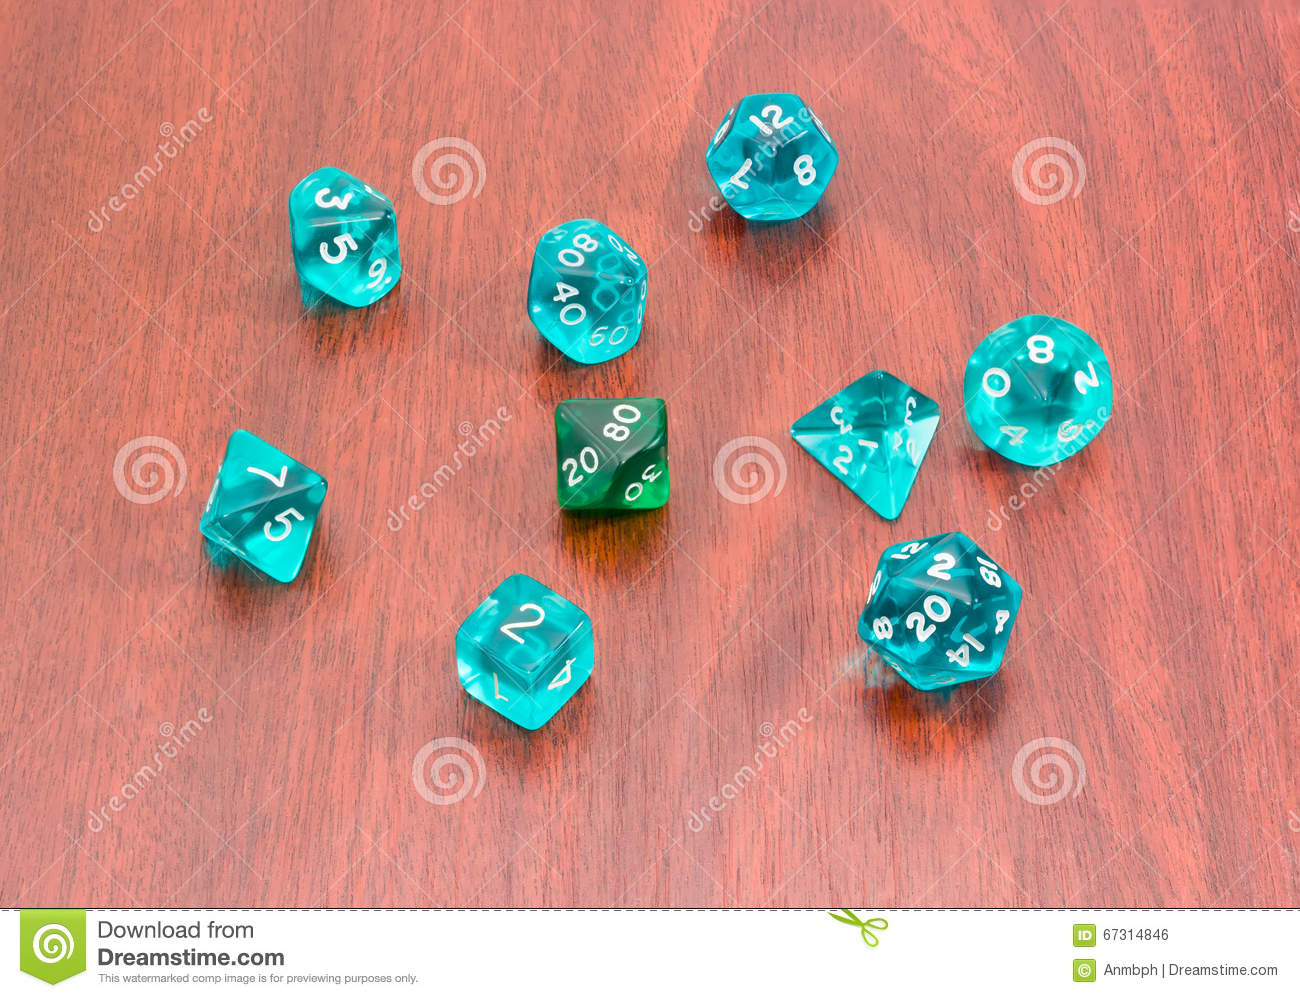 Specialized Polyhedral Dice For Role Playing Games On Wooden Surface